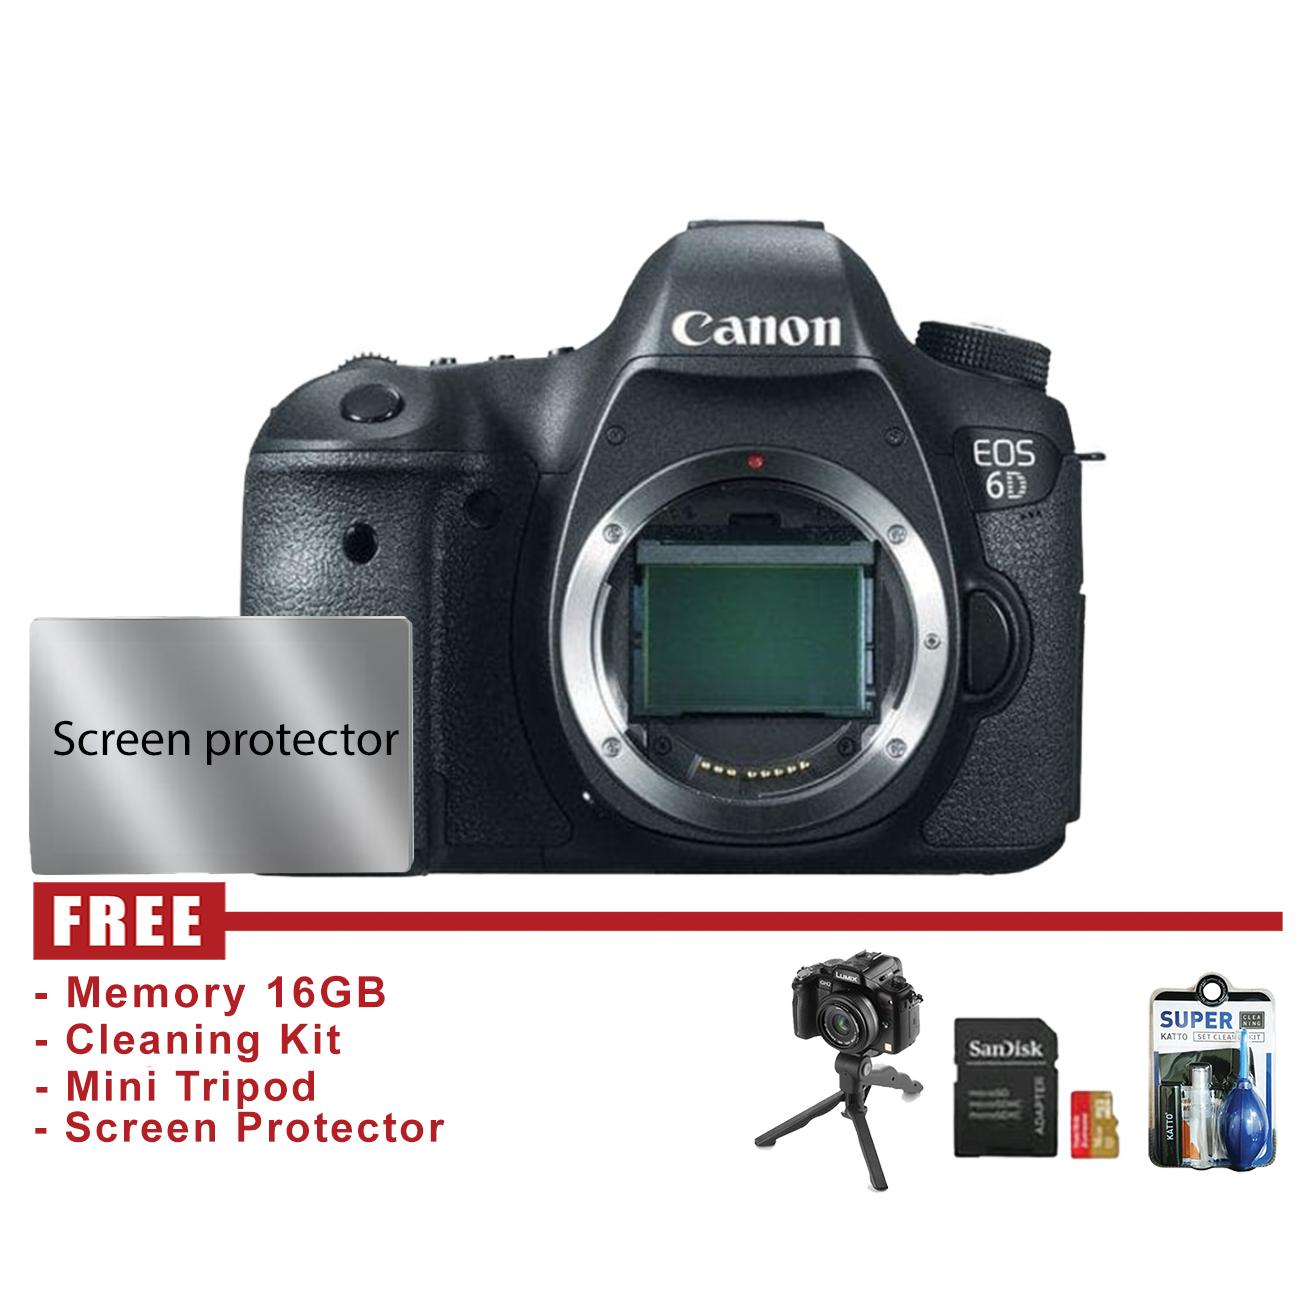 Canon Eos 6d Body Only By Central Camera.